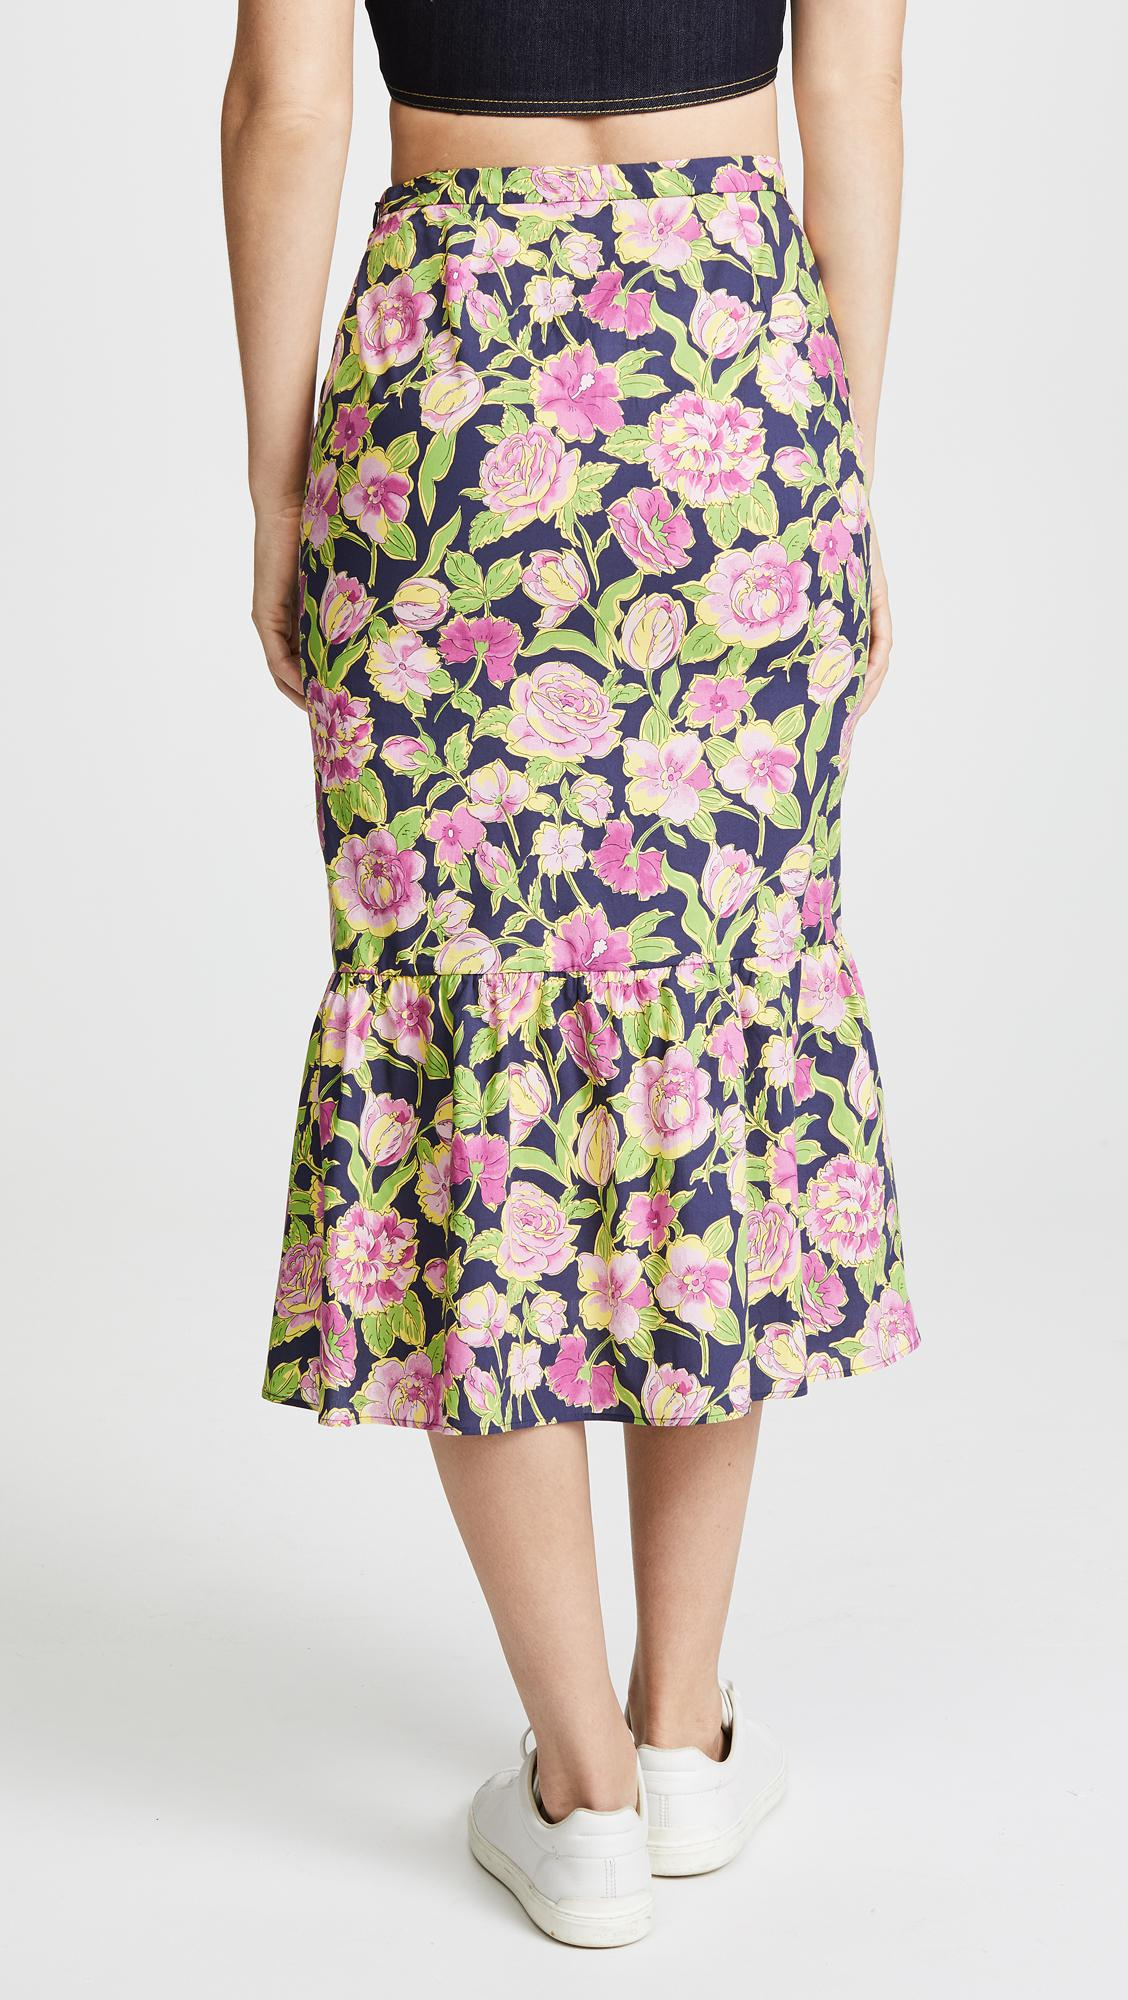 c57bef696 Gallery. Previously sold at: Shopbop · Women's Printed Skirts Women's Pencil  ...